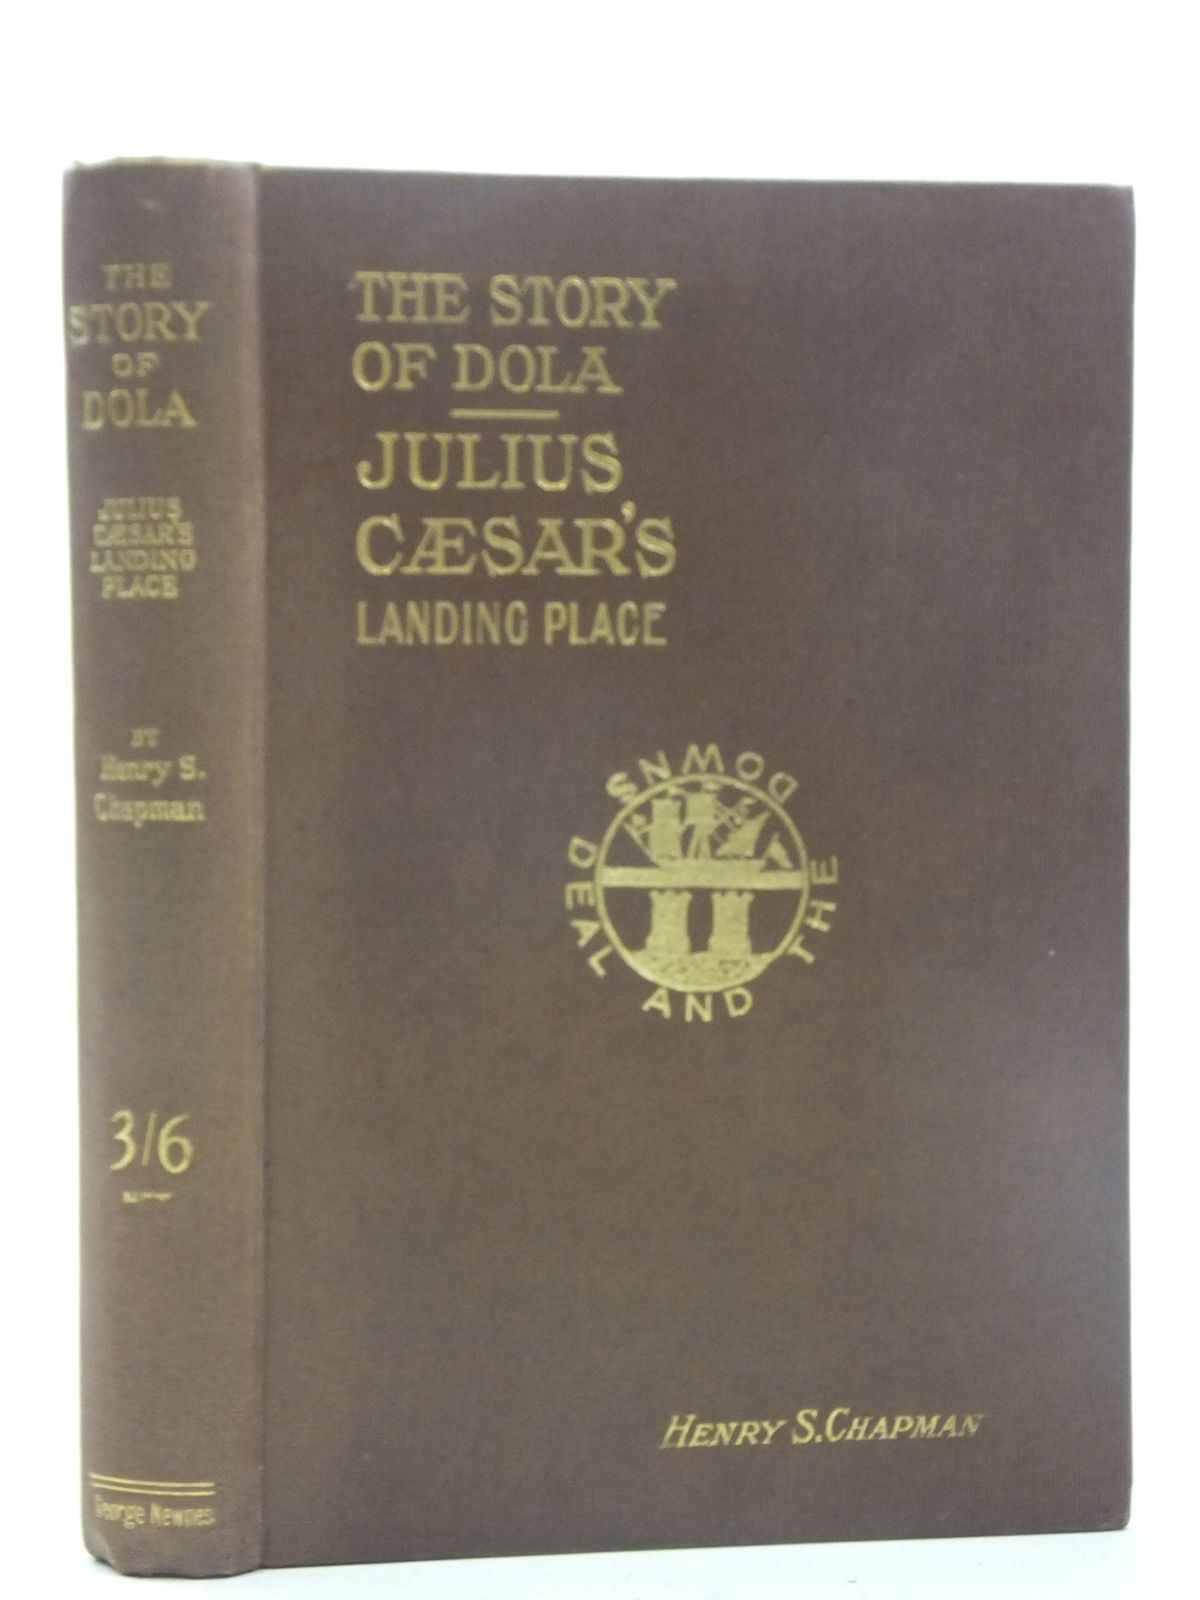 Photo of THE STORY OF DOLA JULIUS CAESAR'S LANDING PLACE A ROMANTIC HISTORY OF EARLY BRITAIN written by Chapman, Henry S. published by George Newnes Limited (STOCK CODE: 2117960)  for sale by Stella & Rose's Books